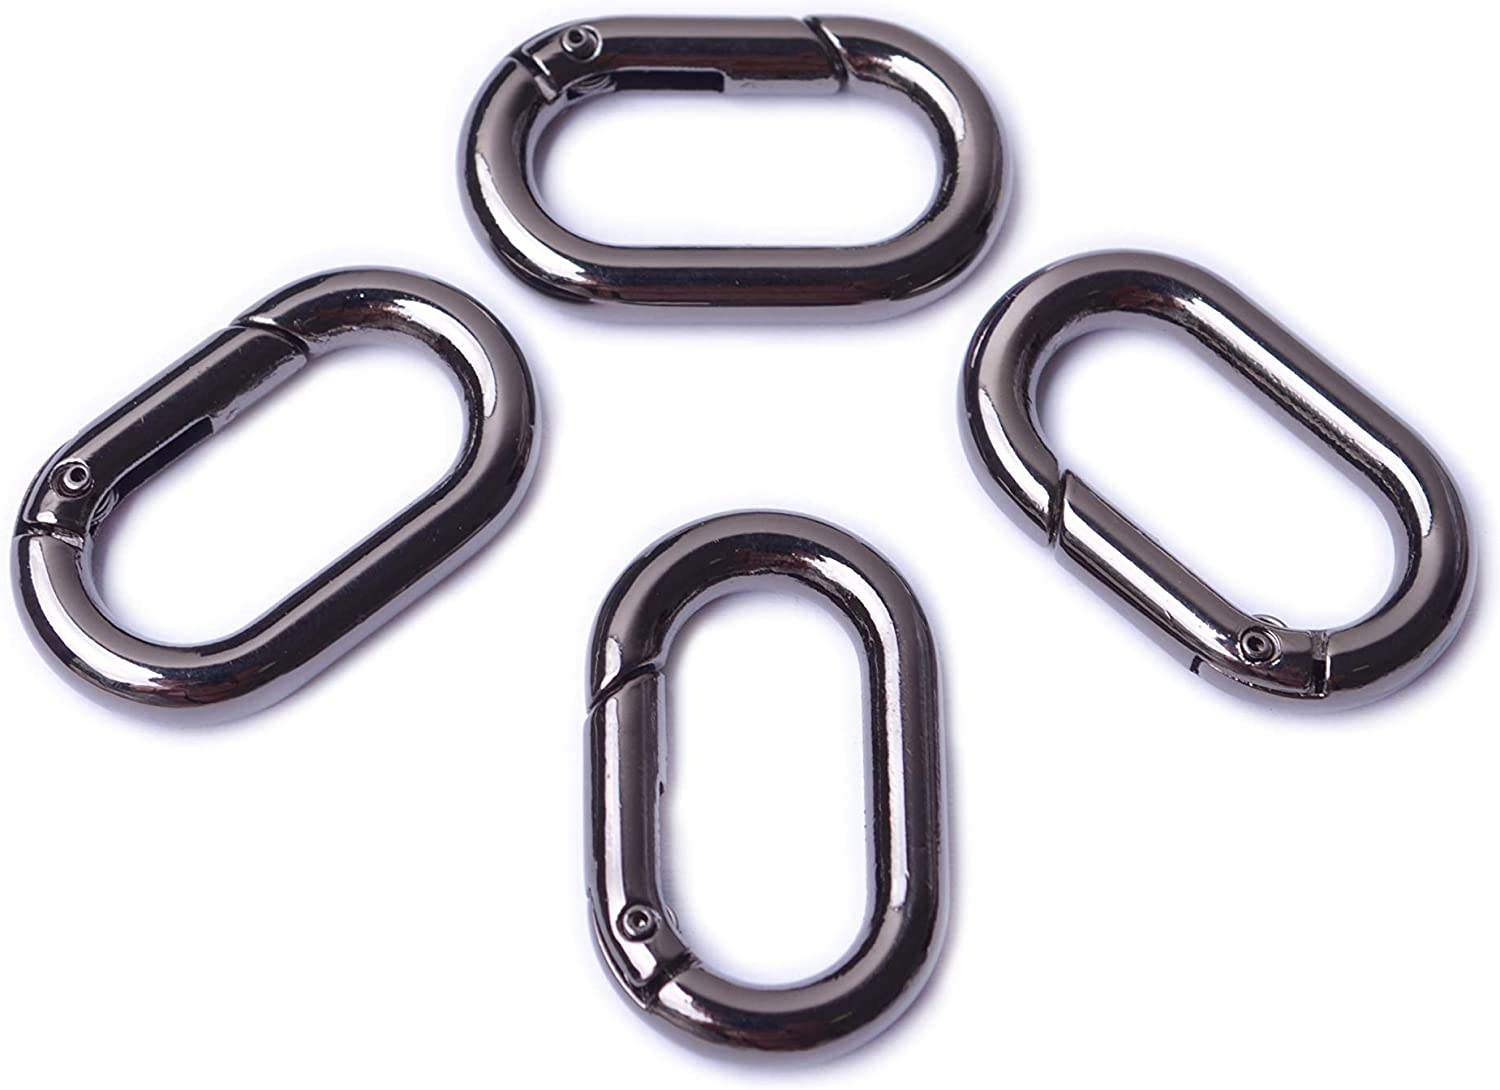 Bobeey 4pcs Carabiner Metal Spring Key Ring,Spring Snap Hooks Clip,Spring Keyring Buckle,Oval Ring for Bags,Purses BBC39 Silver